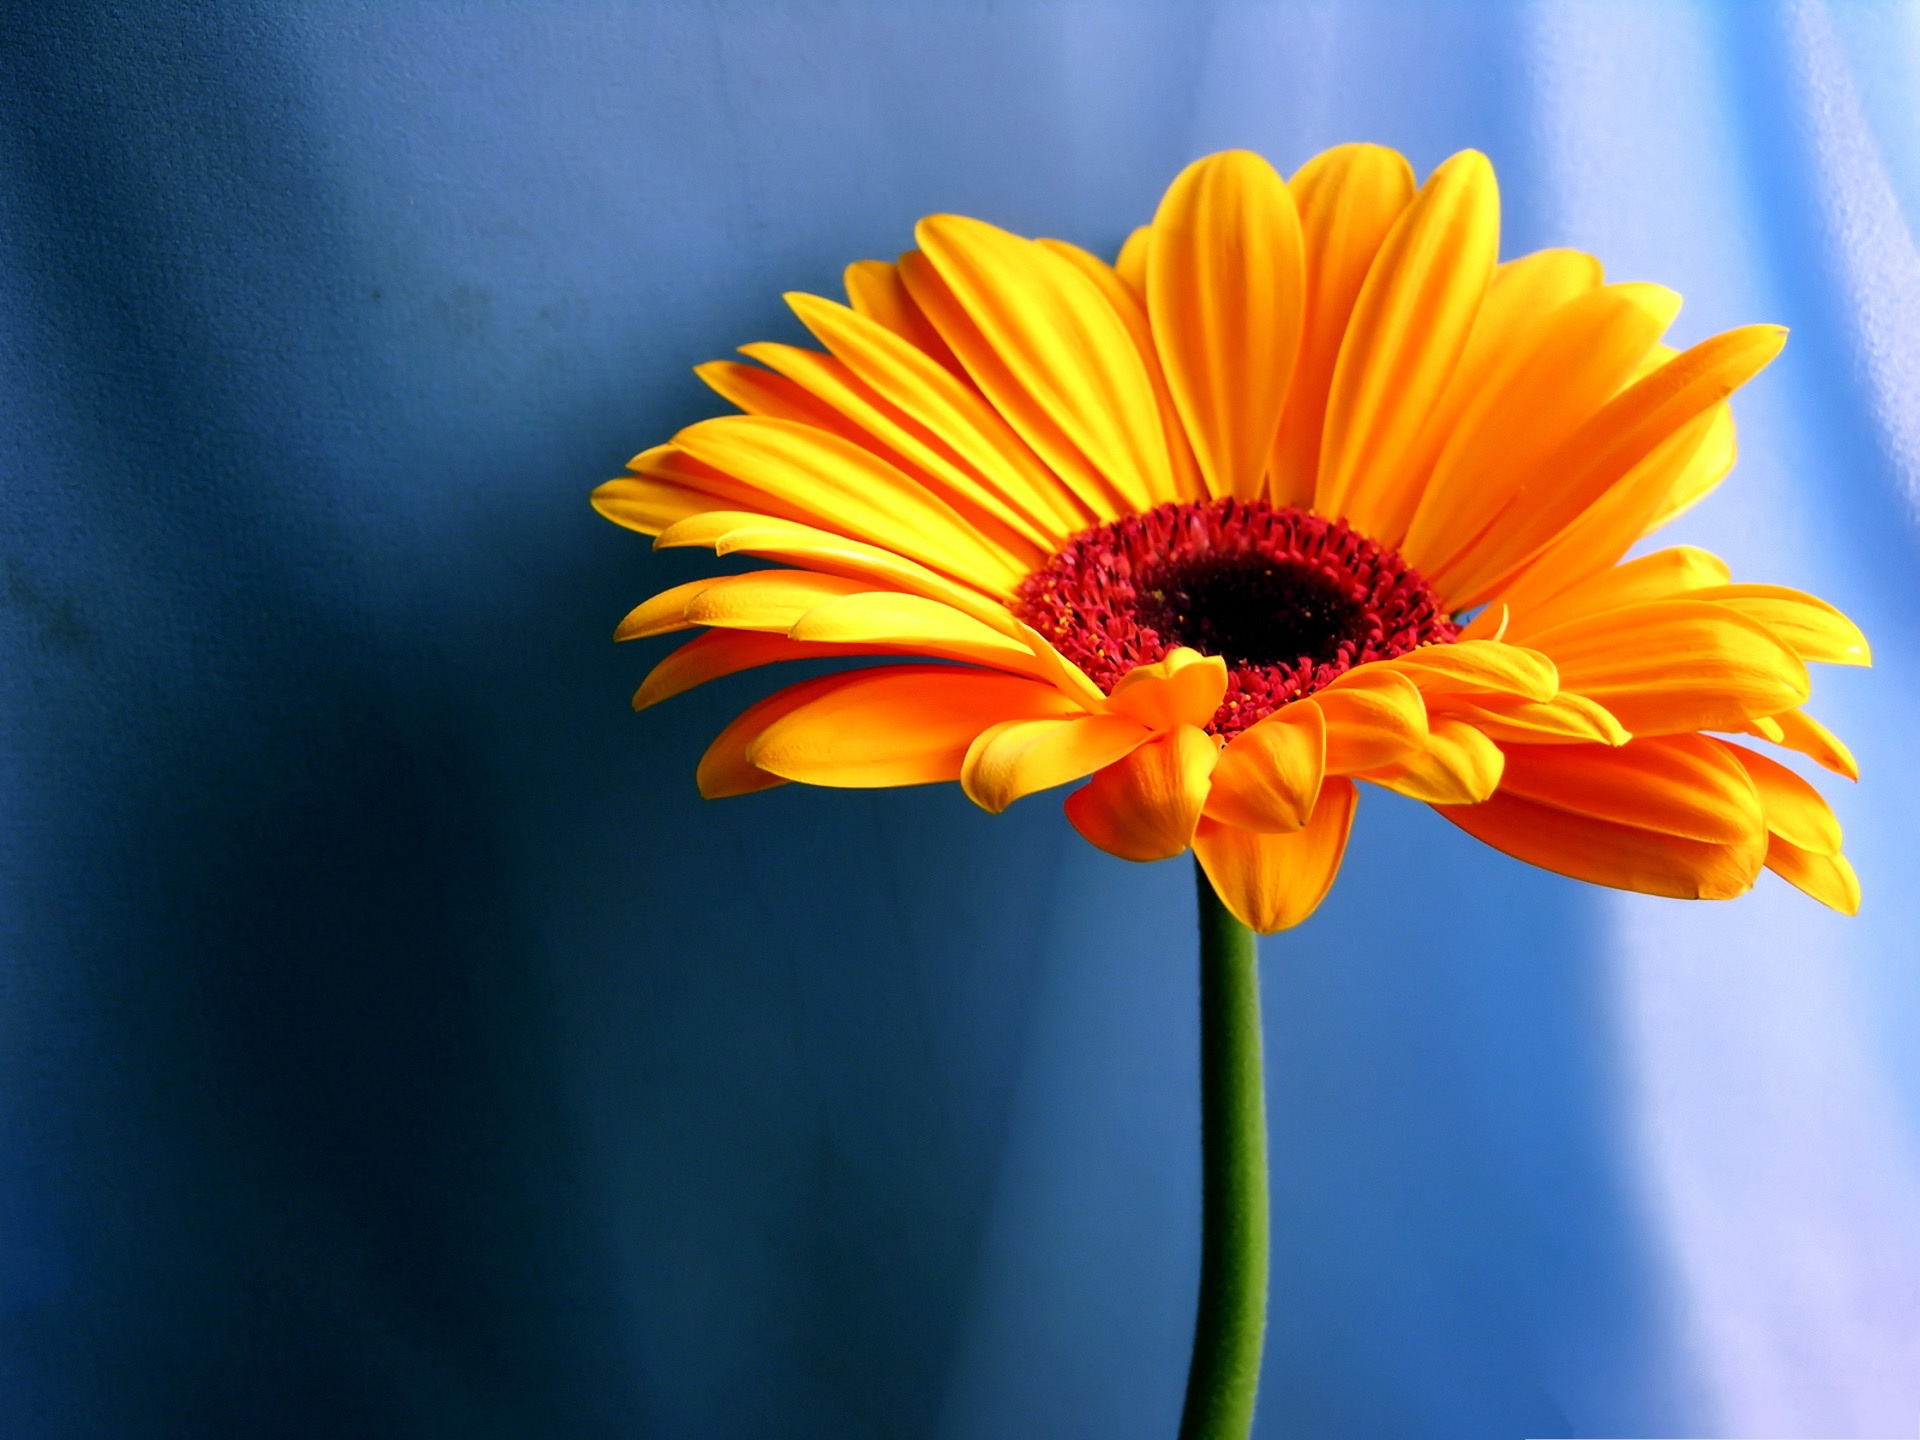 click to free download the wallpaper--Gerbera Daisies Flower, Orange Flower on Light Blue Background 1920X1440 free wallpaper download